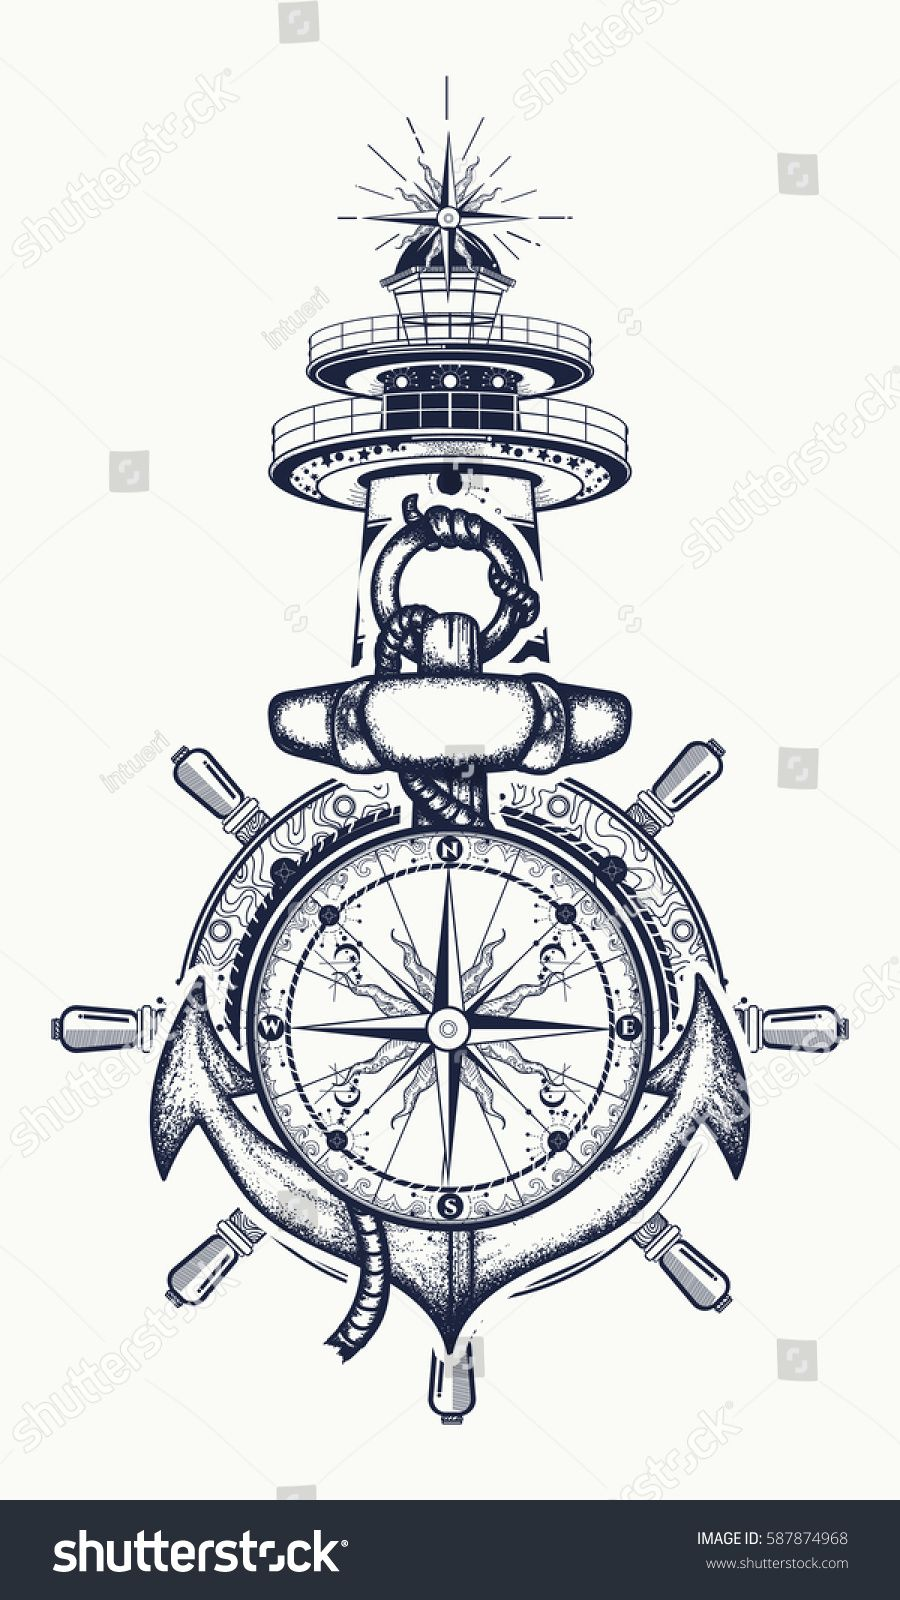 Anchor, steering wheel, compass, lighthouse, tattoo art. Symbol of maritime adventure, tourism, travel. Old anchor and lighthouse t-shirt design #oldtshirtsandsuch